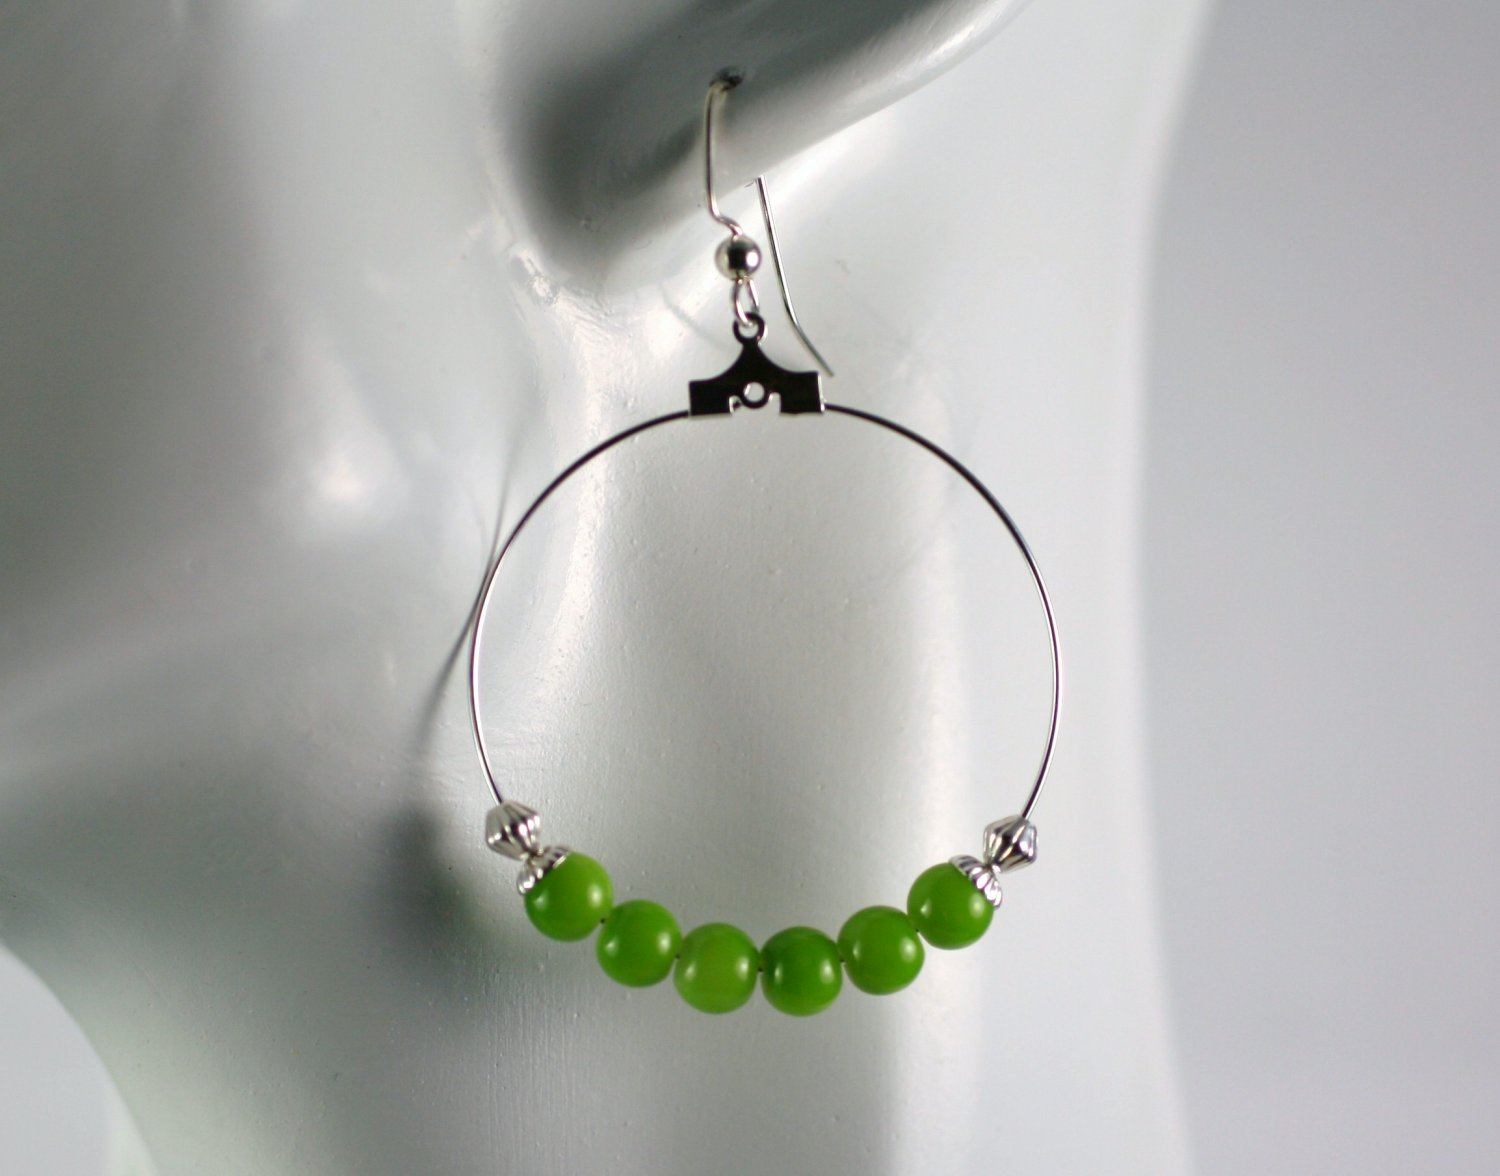 Silver Hoop Earrings with Green Glass Beads 1.5 in.  Handcrafted Jewelry